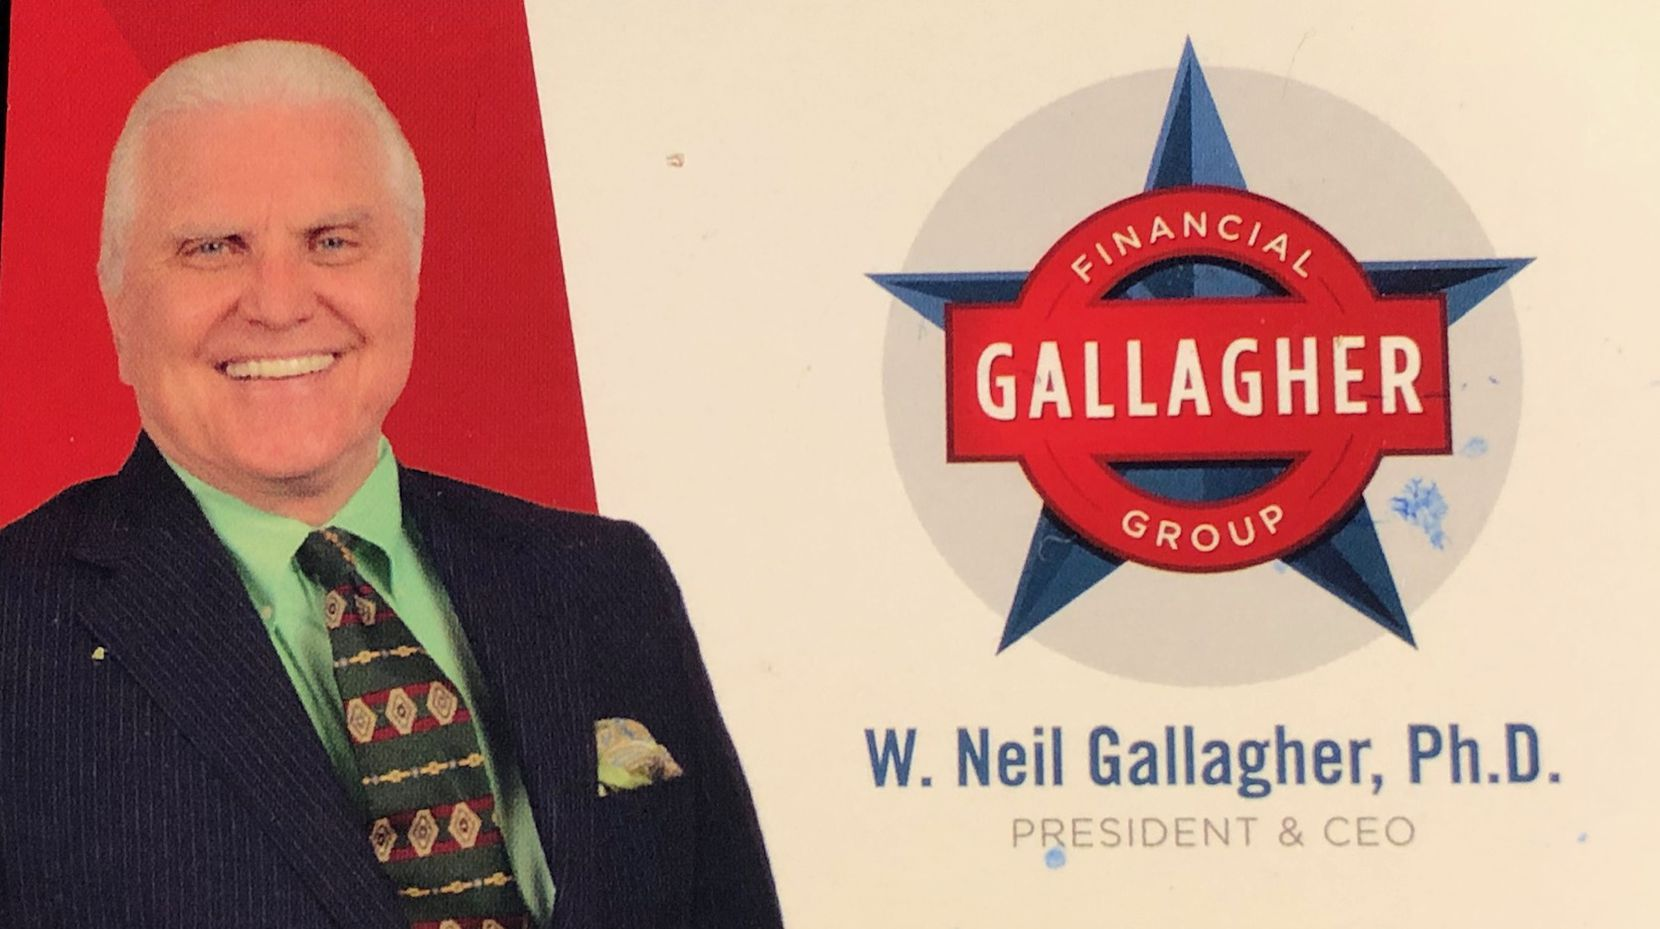 Gallagher's business card. His Gallagher Financial Group has been shut down by authorities. Its assets are under the control of a court-appointed receiver.